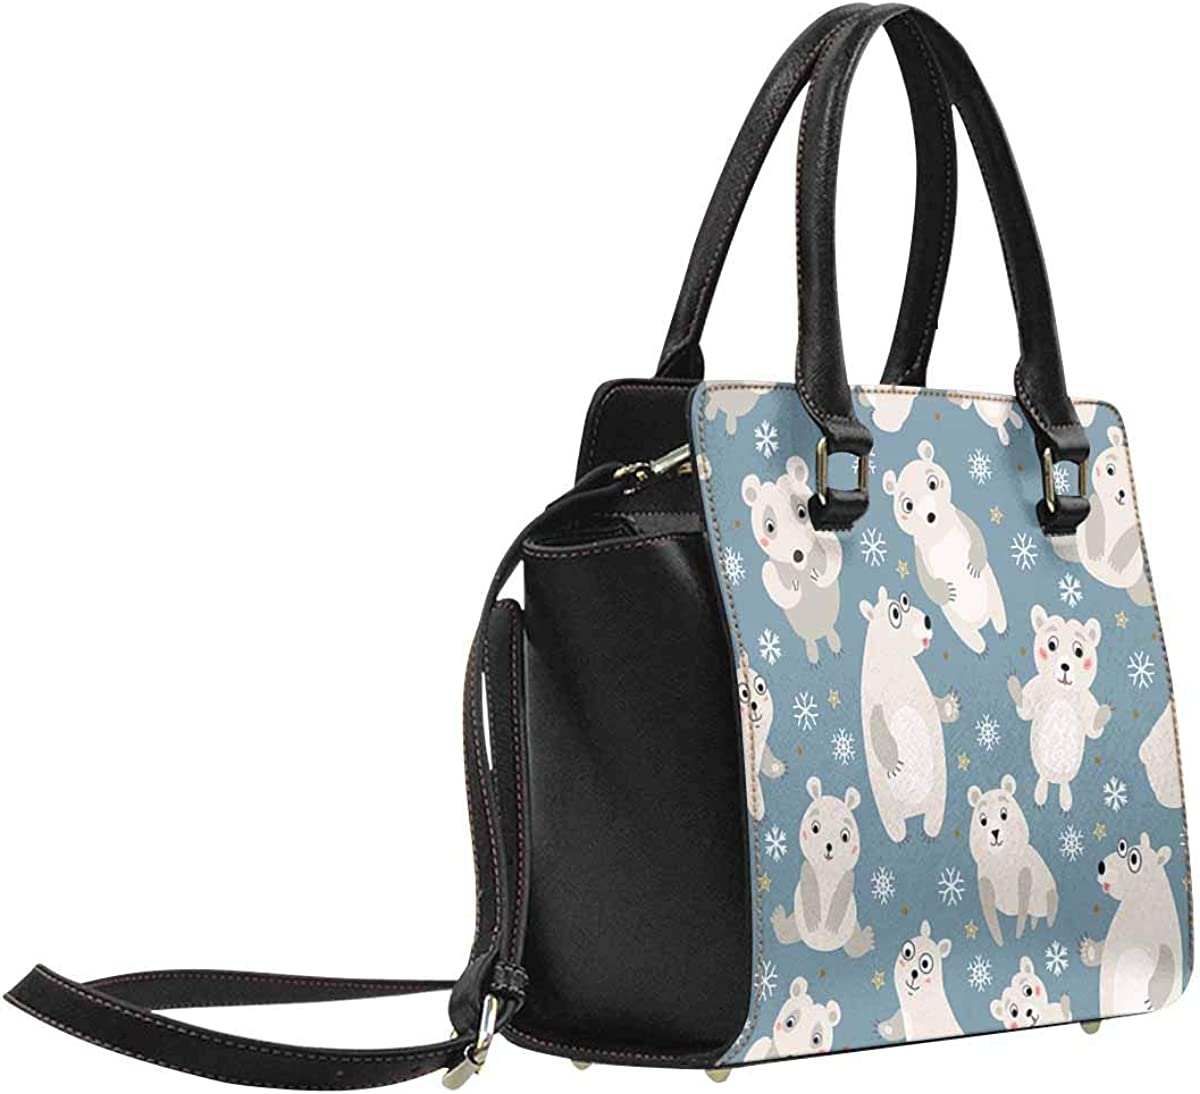 INTERESTPRINT Polar Bear Arctic Animals Crossbody Bags Purses Shoulder Bag for Women